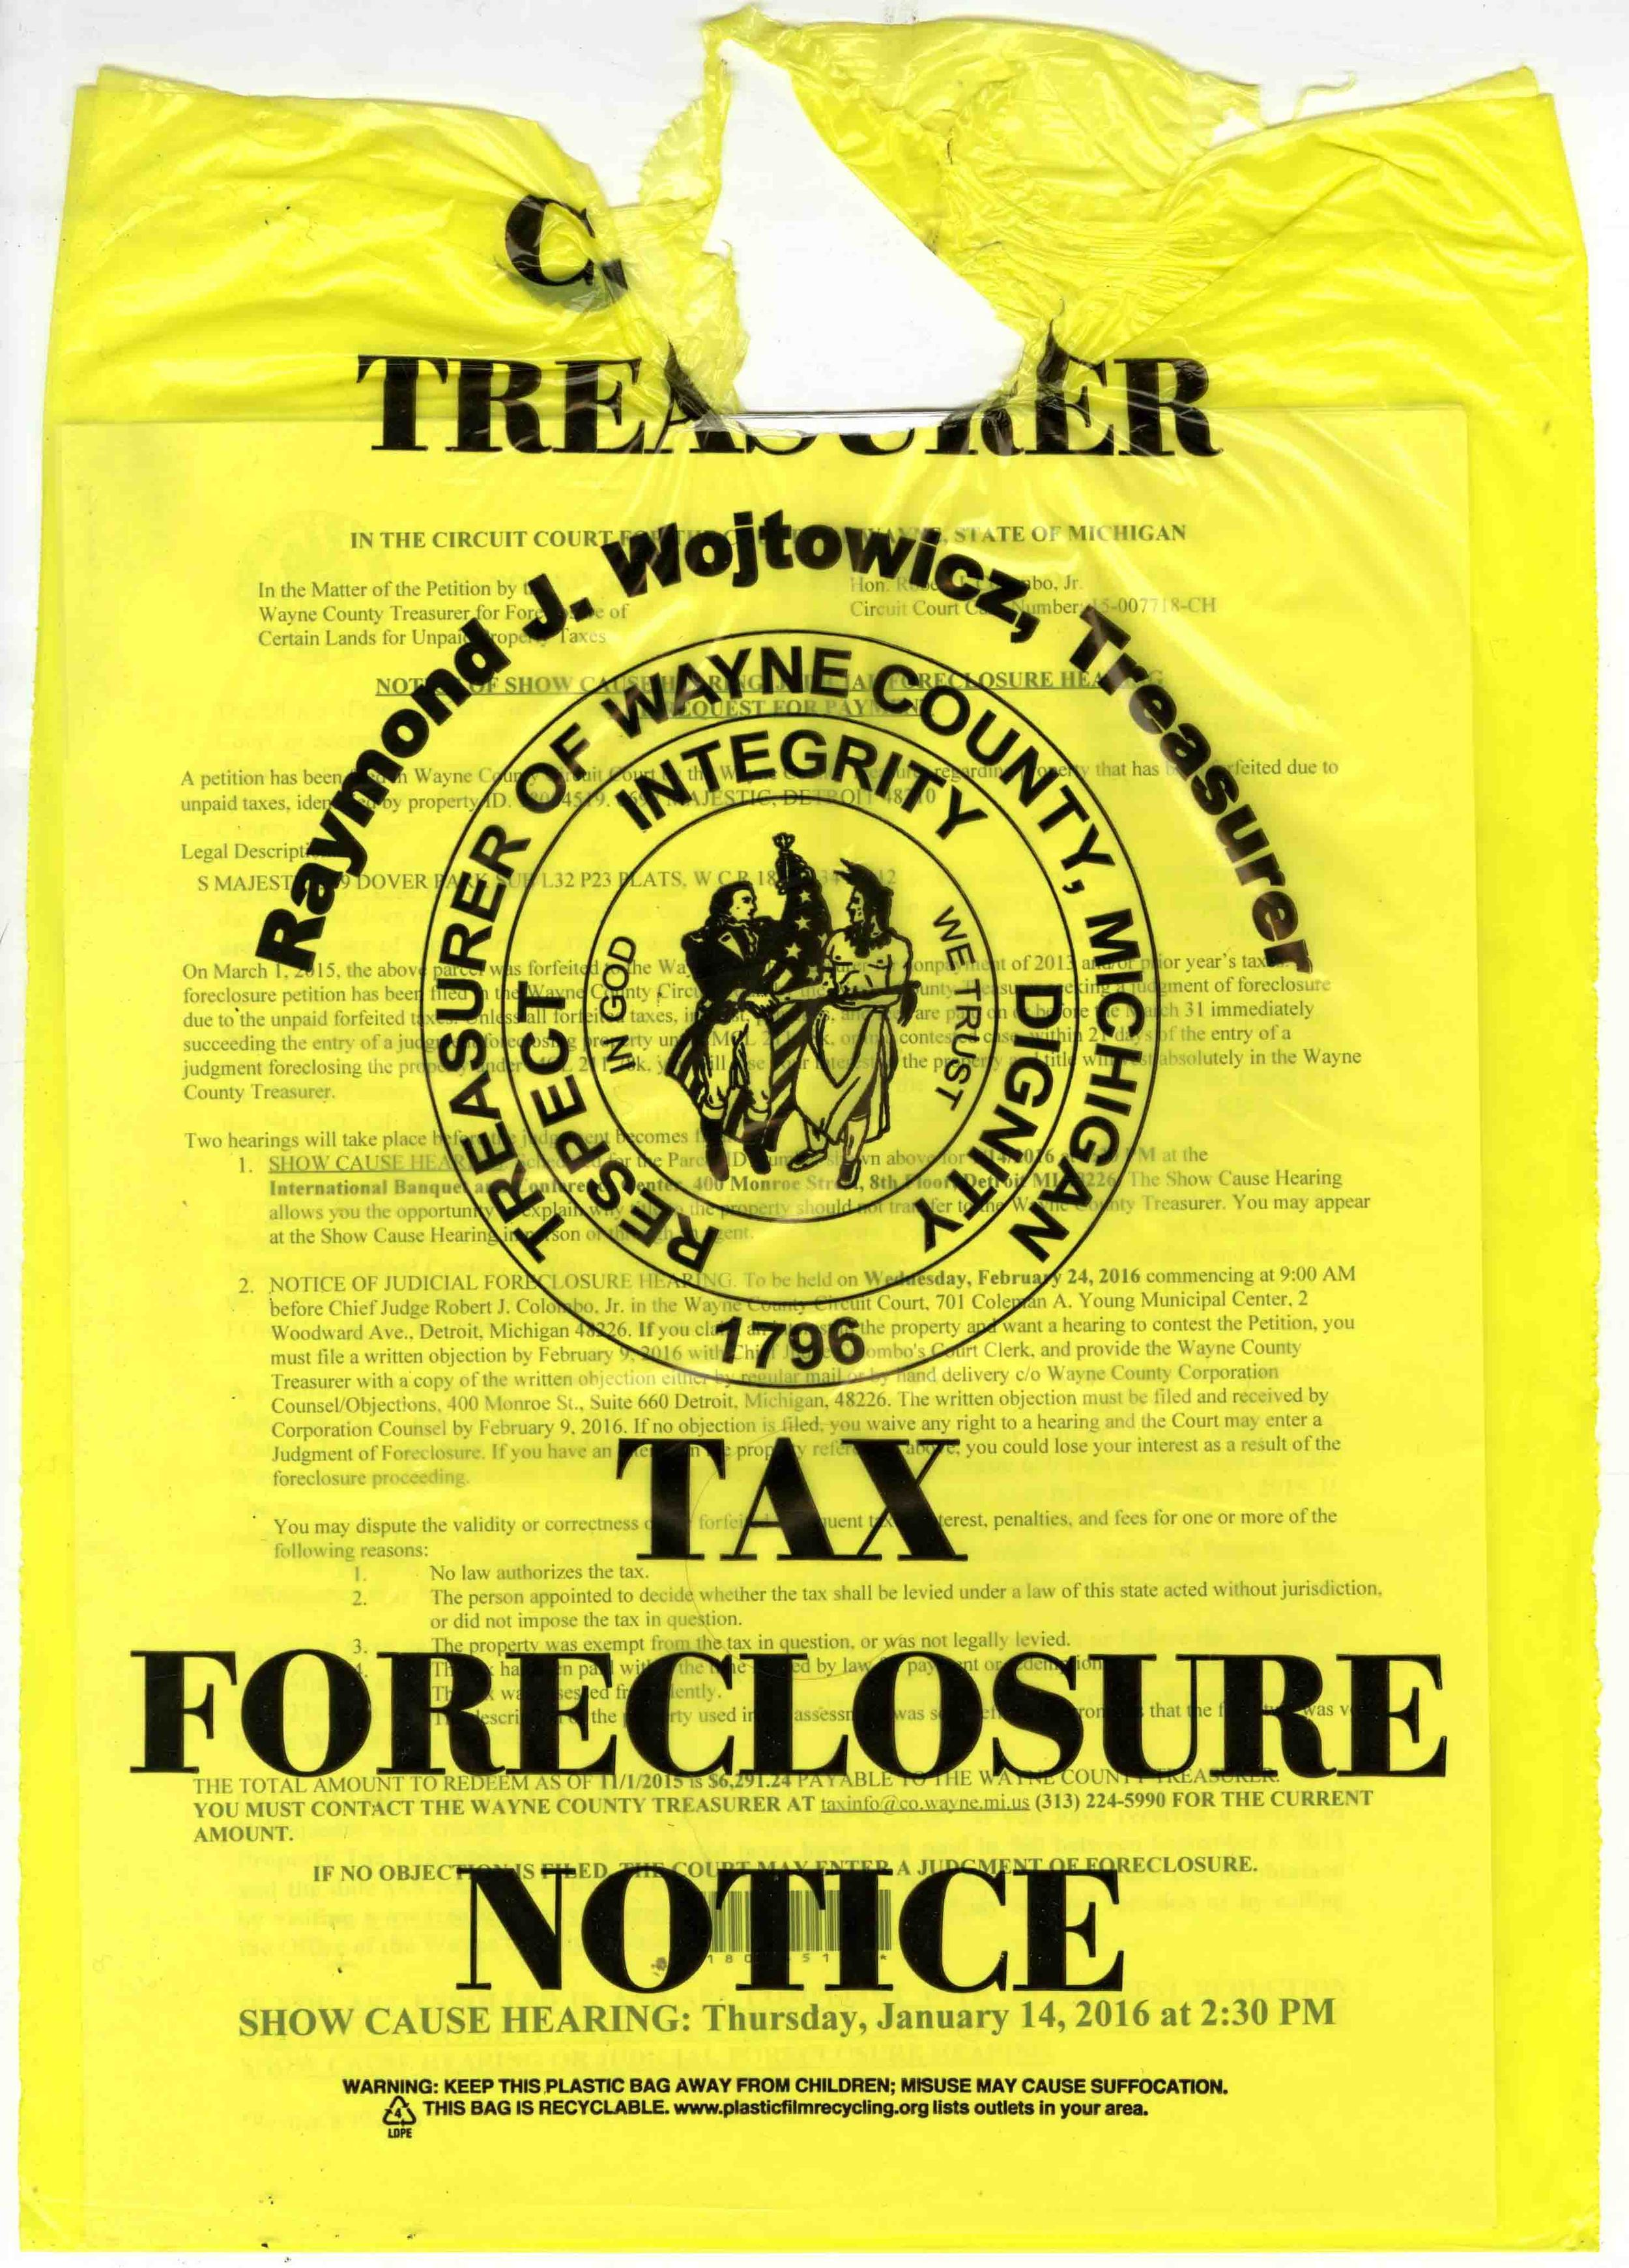 The yellow Foreclosure Notice bag is an unfortunate fixture throughout Detroit neighborhoods.